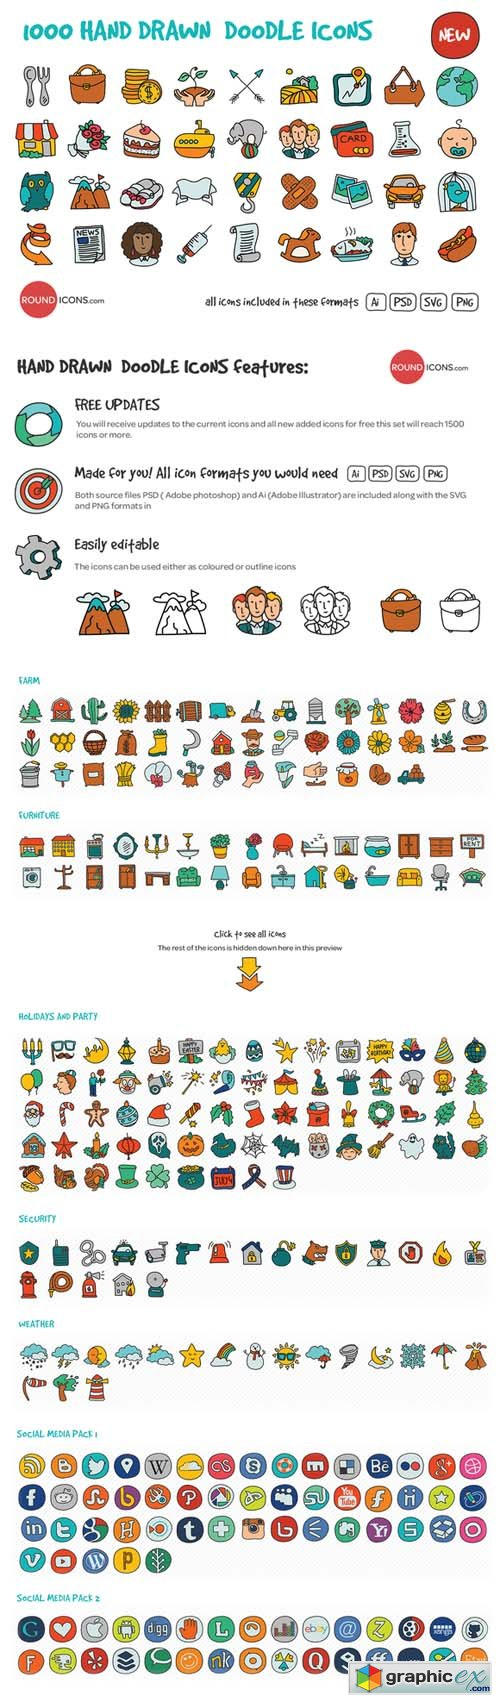 1000 Hand Drawn Doodle Icons